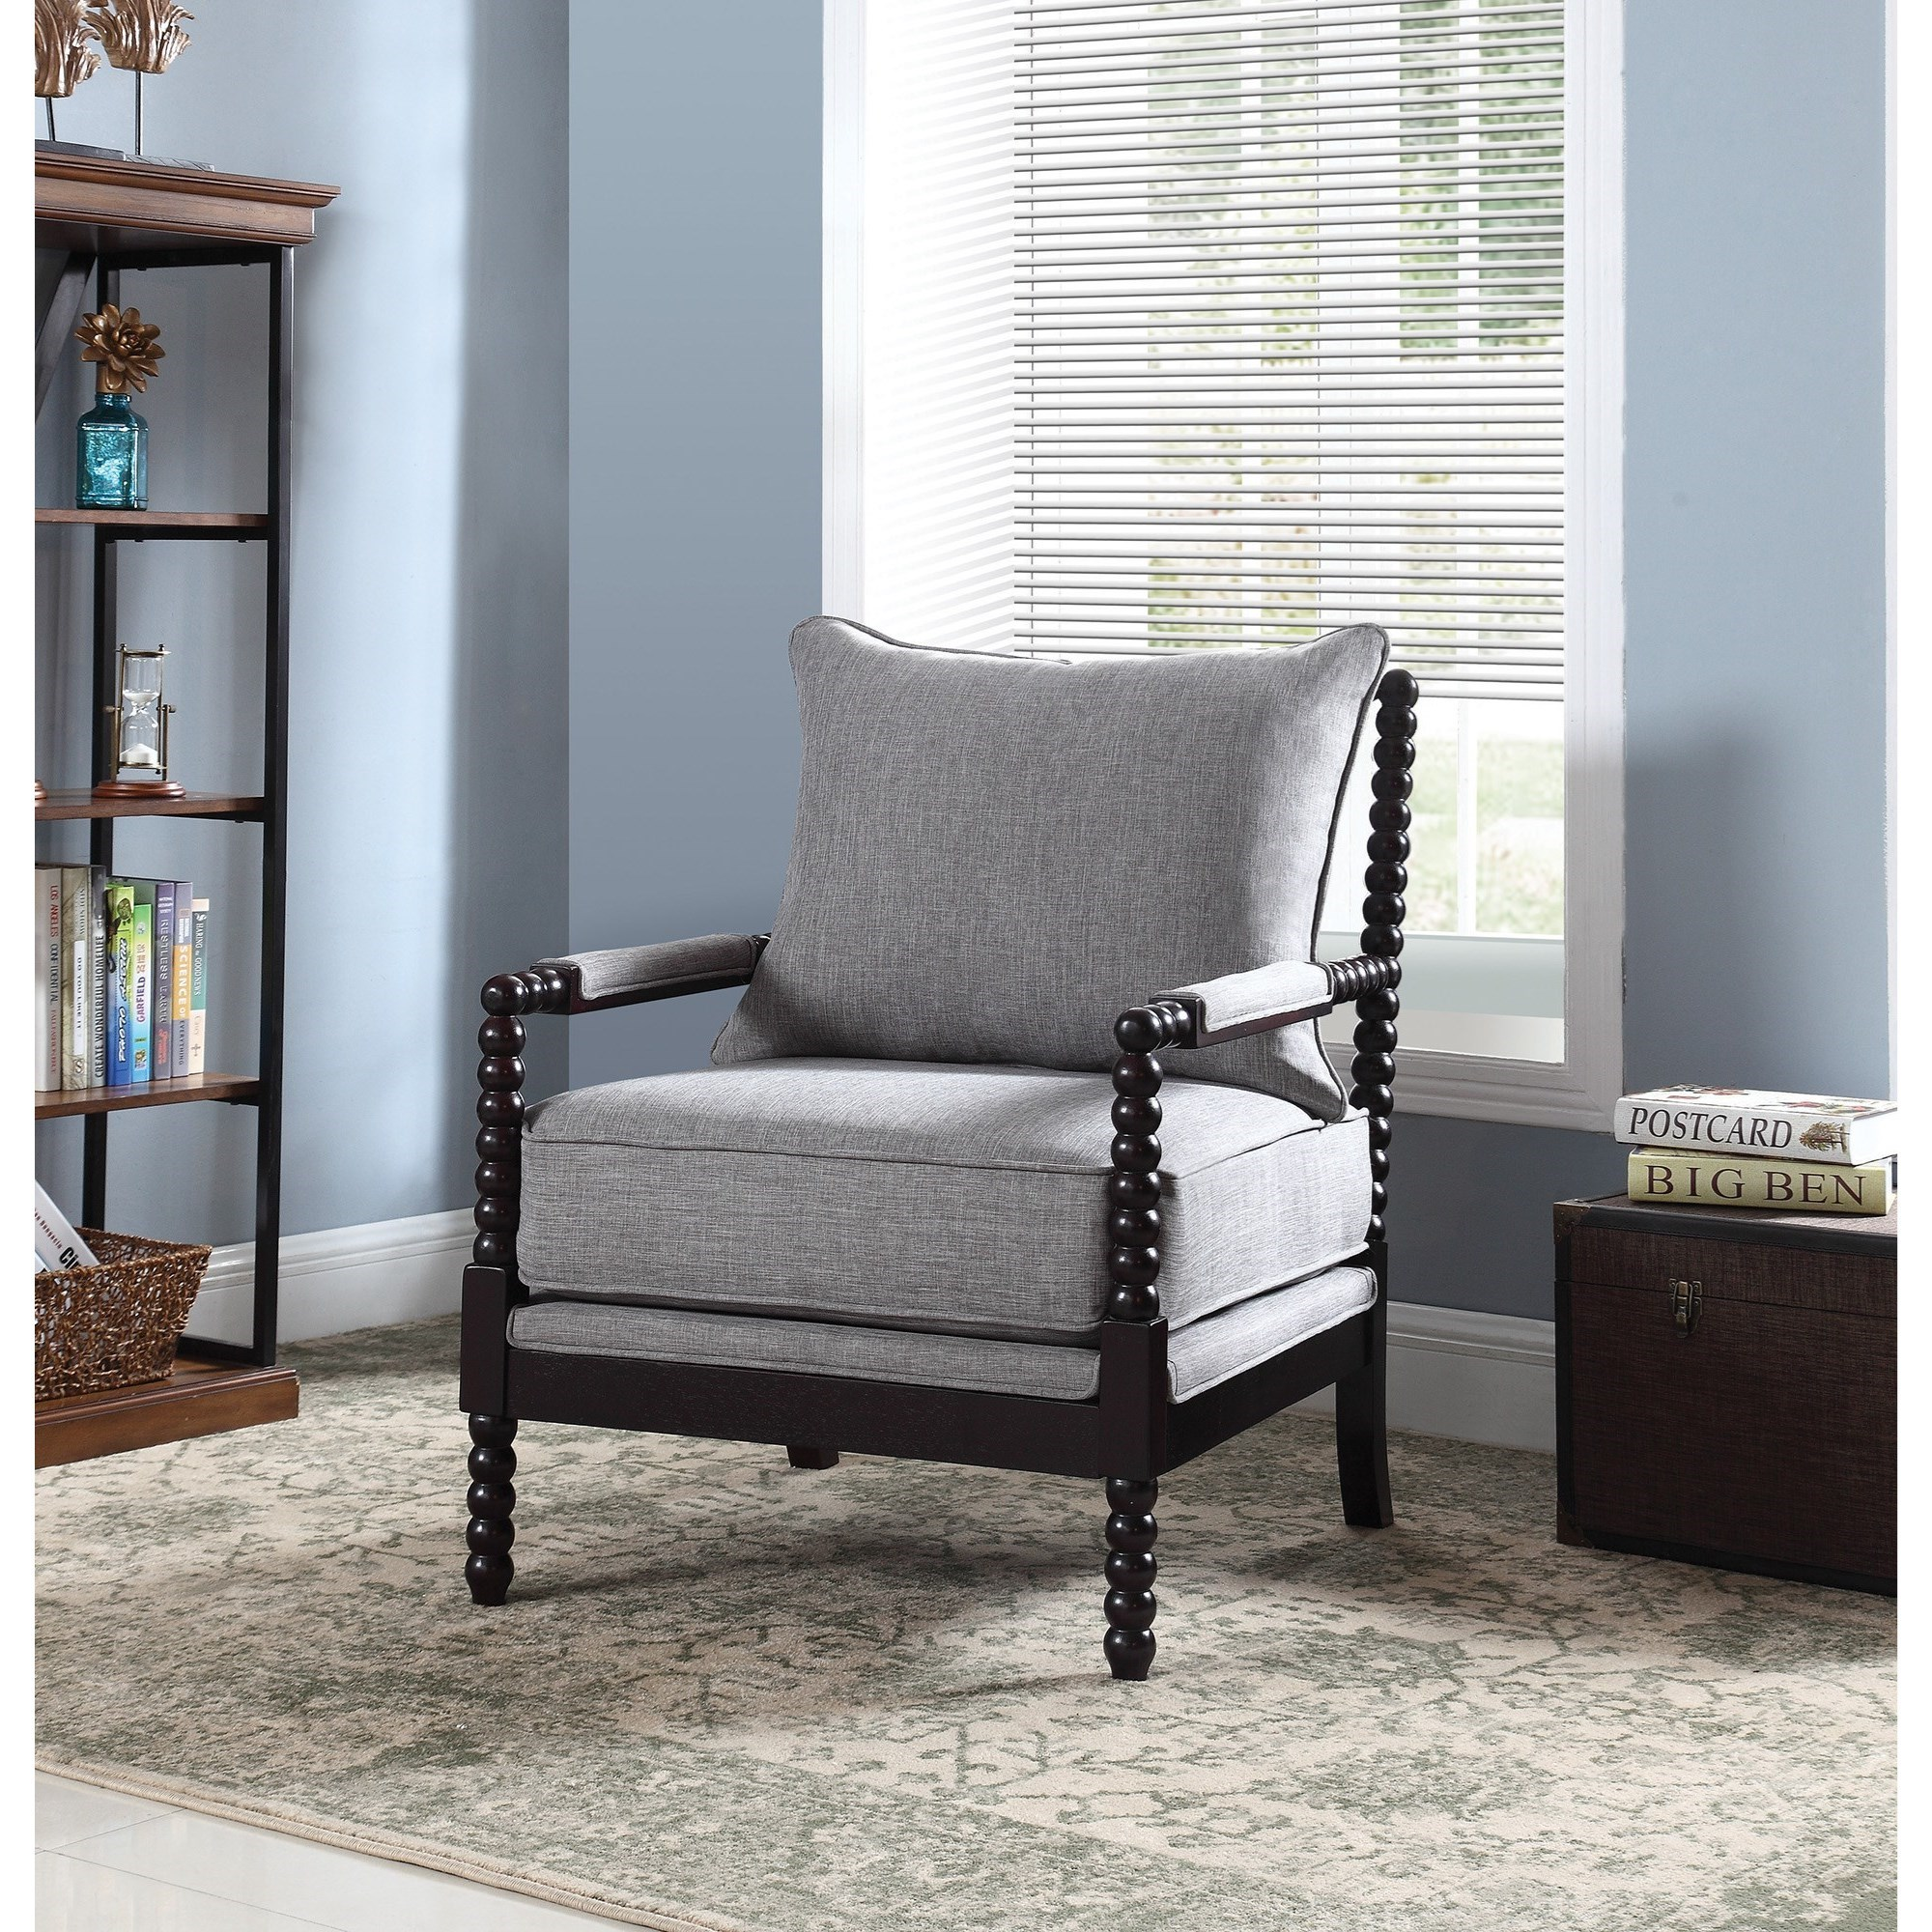 Coaster Furniture Pittsburgh Accent Chair: Coaster Accent Seating 903824 Accent Chair With Beaded